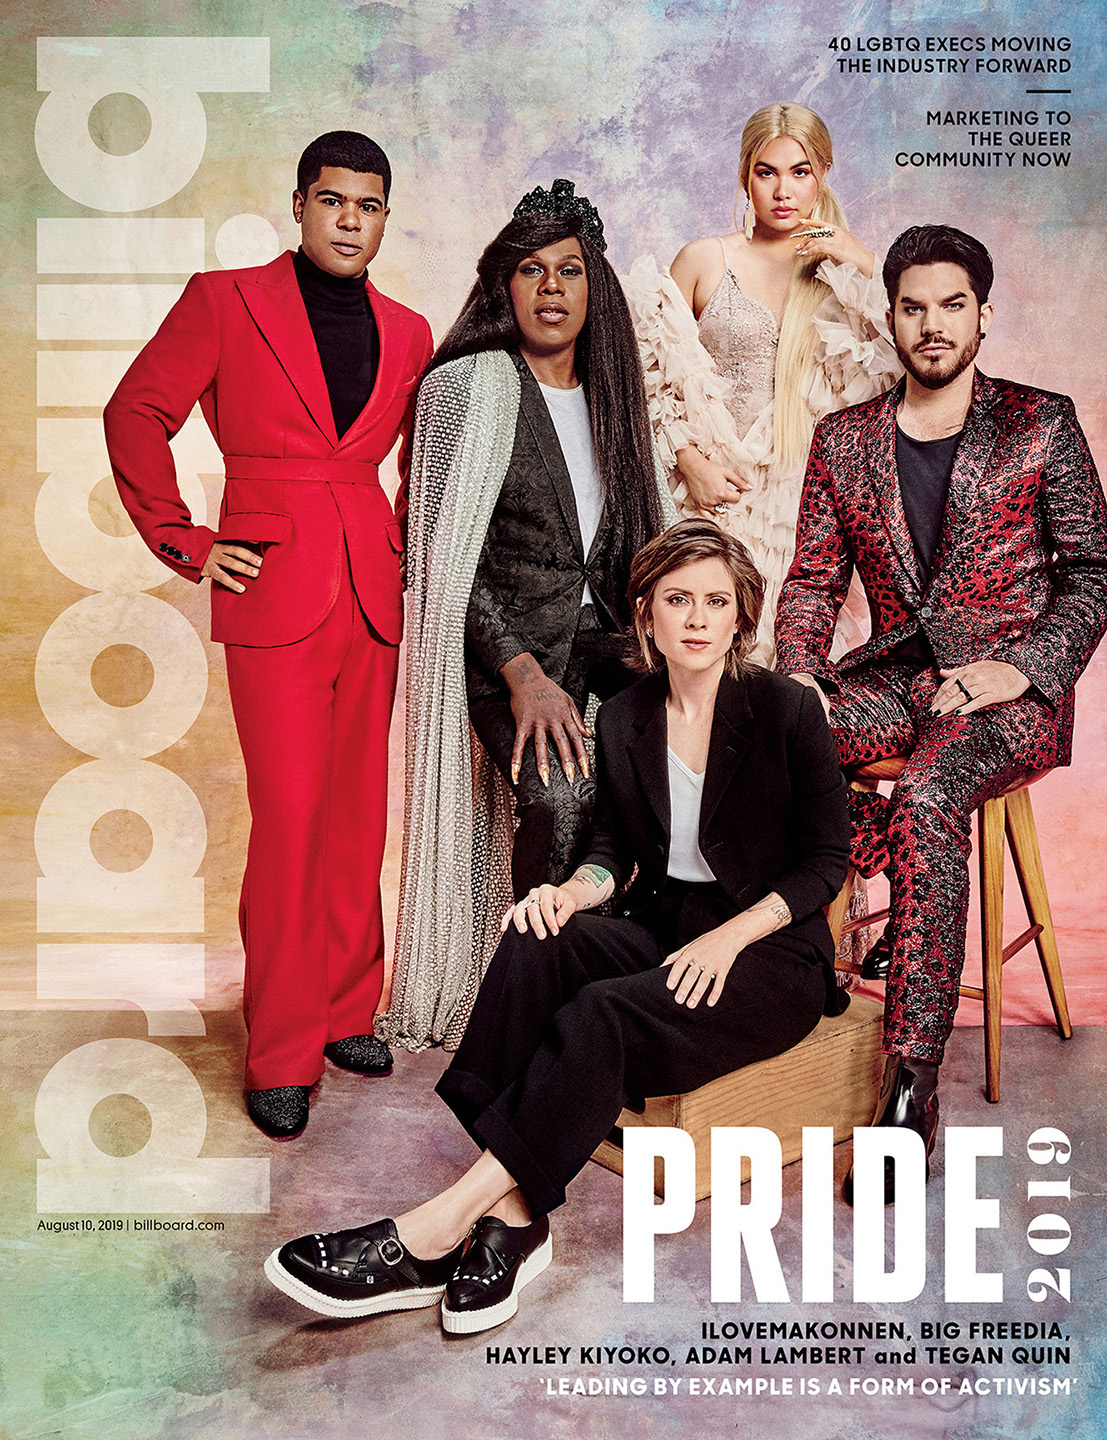 Billboard Magazine PRIDE Summit Roundtable Cover Big Freedia, ilovemakonnen, Hayley Kiyoko, Adam Lambert, Tegan Quin